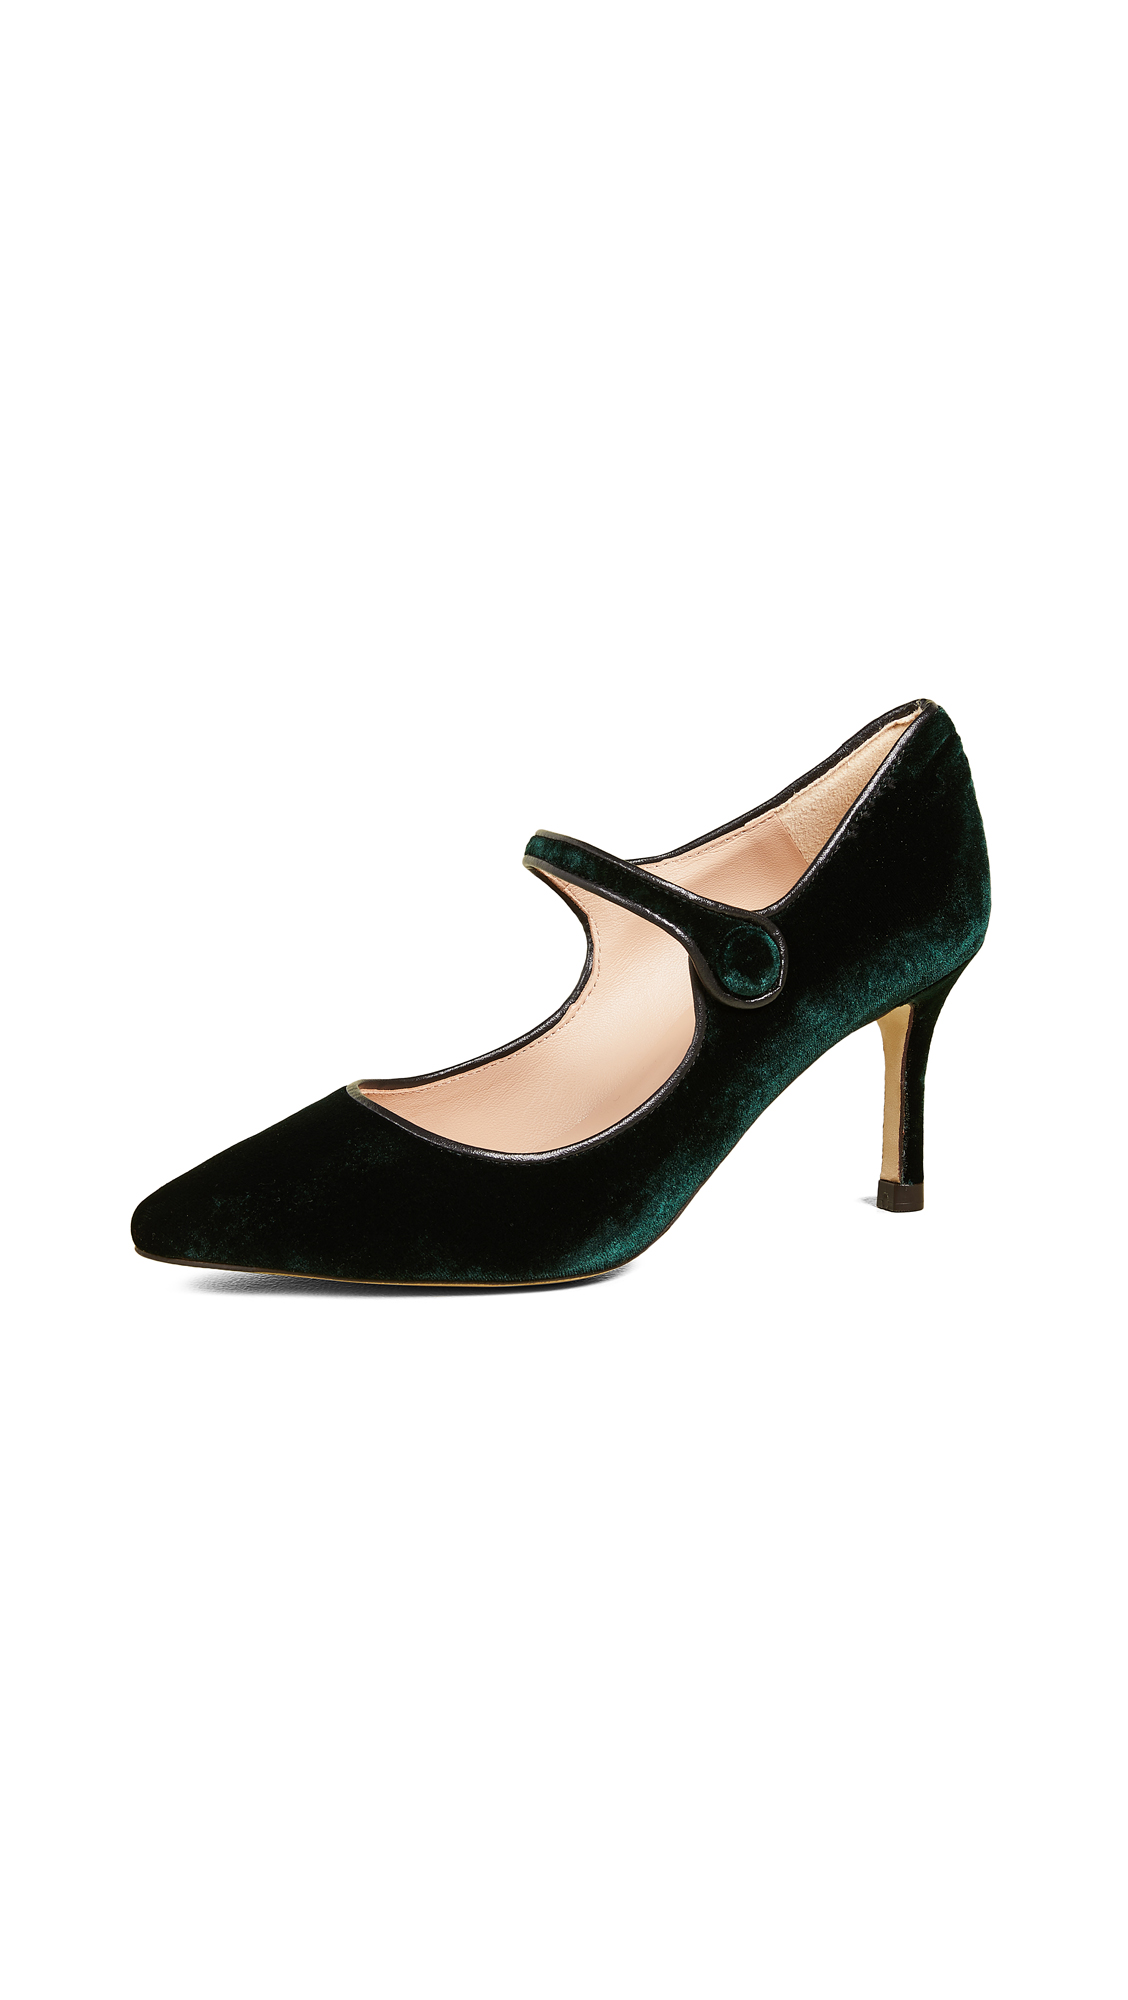 L.K. Bennett Monica Mary Jane Pumps